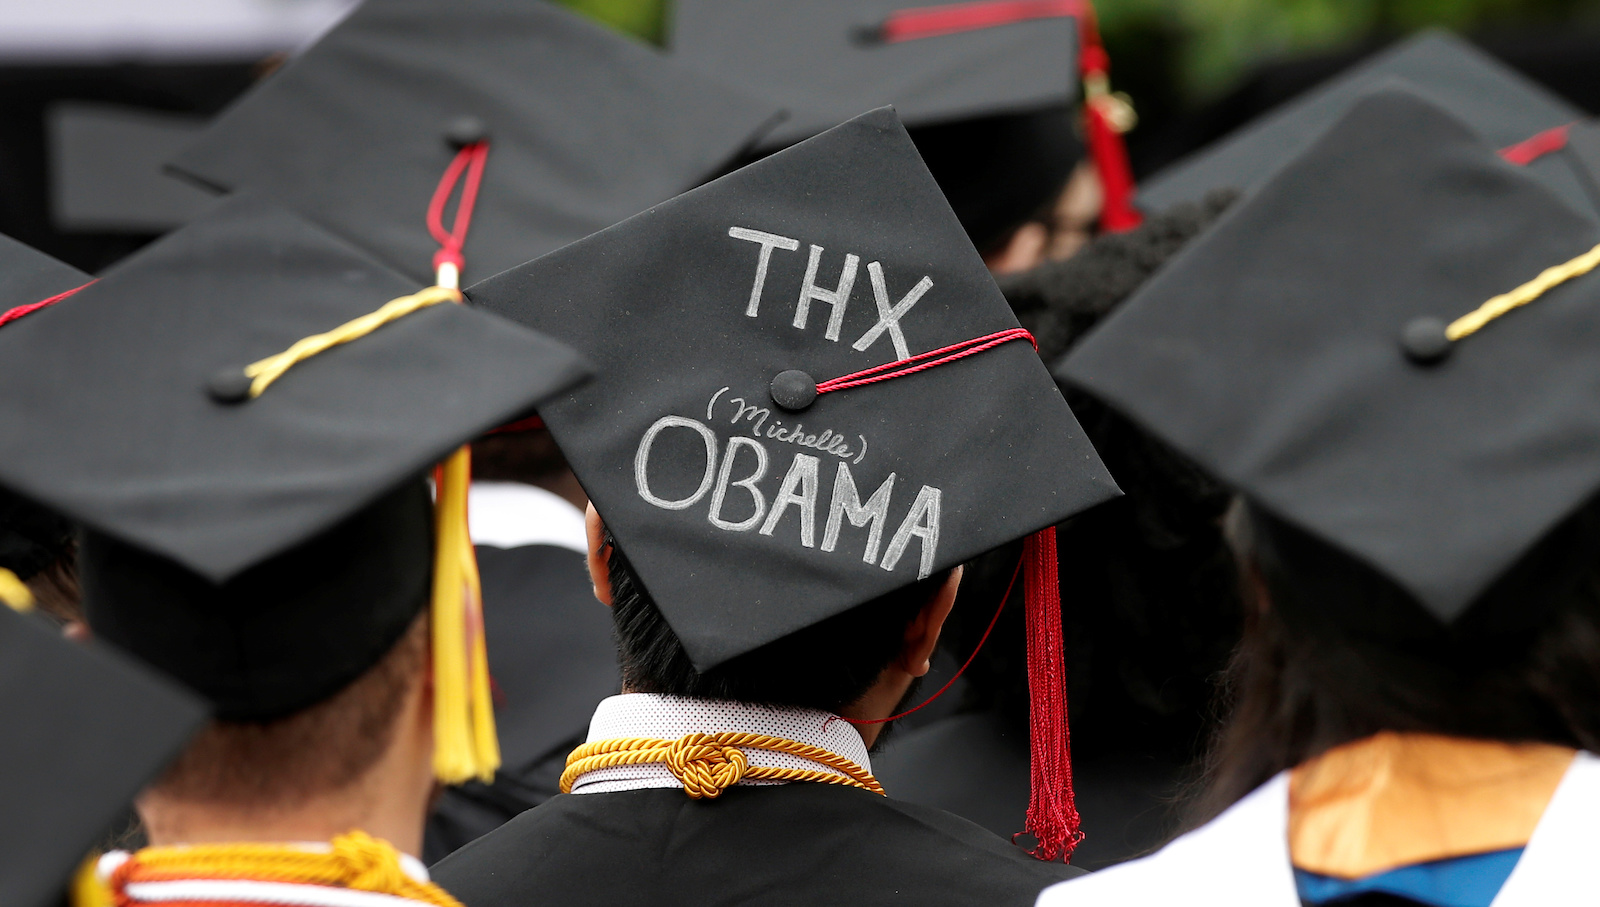 A message is written on the cap of a graduating student as U.S. first lady Michelle Obama (unseen) addresses graduating students of the City College of New York during the College's commencement ceremony in the Harlem section of Manhattan, New York, U.S. June 3, 2016. REUTERS/Mike Segar - RTX2FKIA